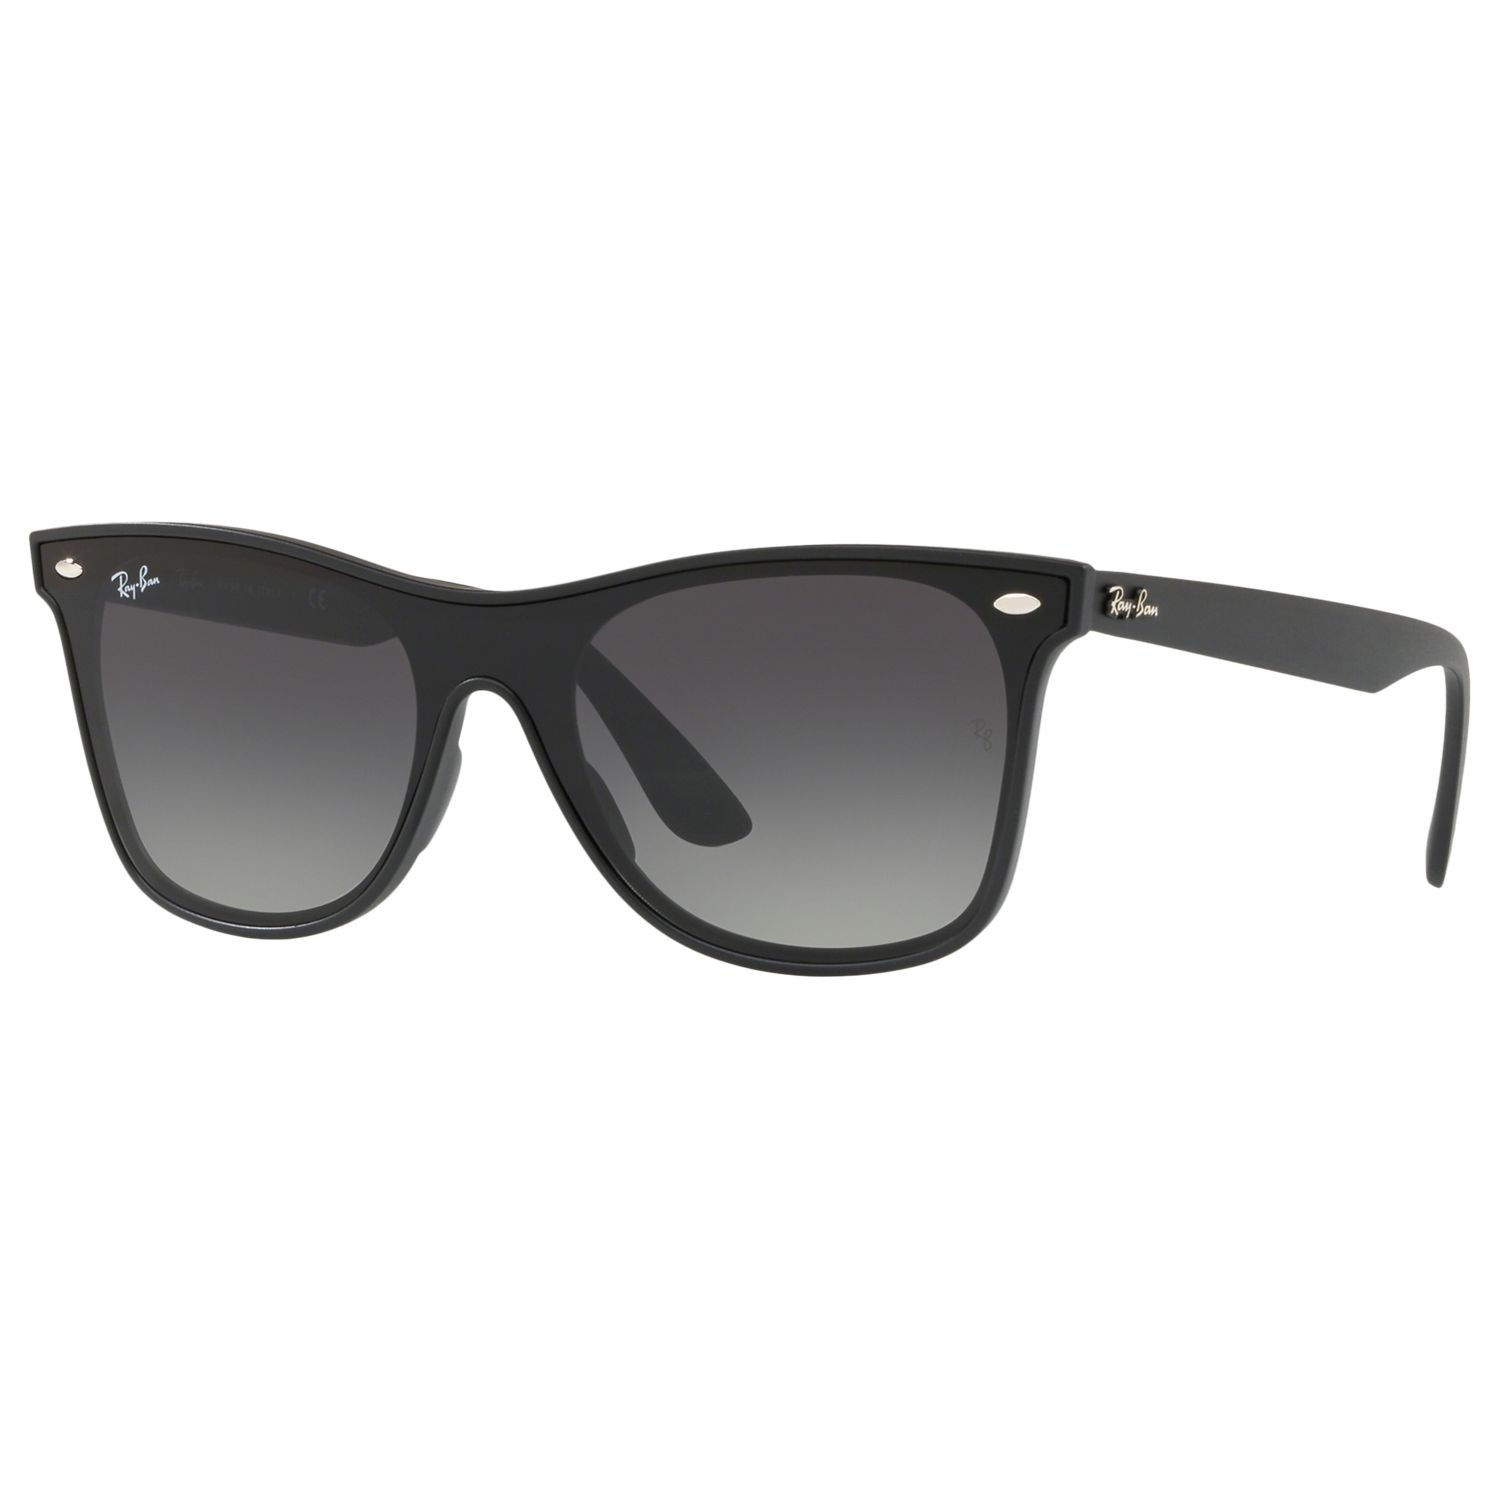 Ray-ban Ray-Ban RB4440 Unisex Mirrored Sunglasses